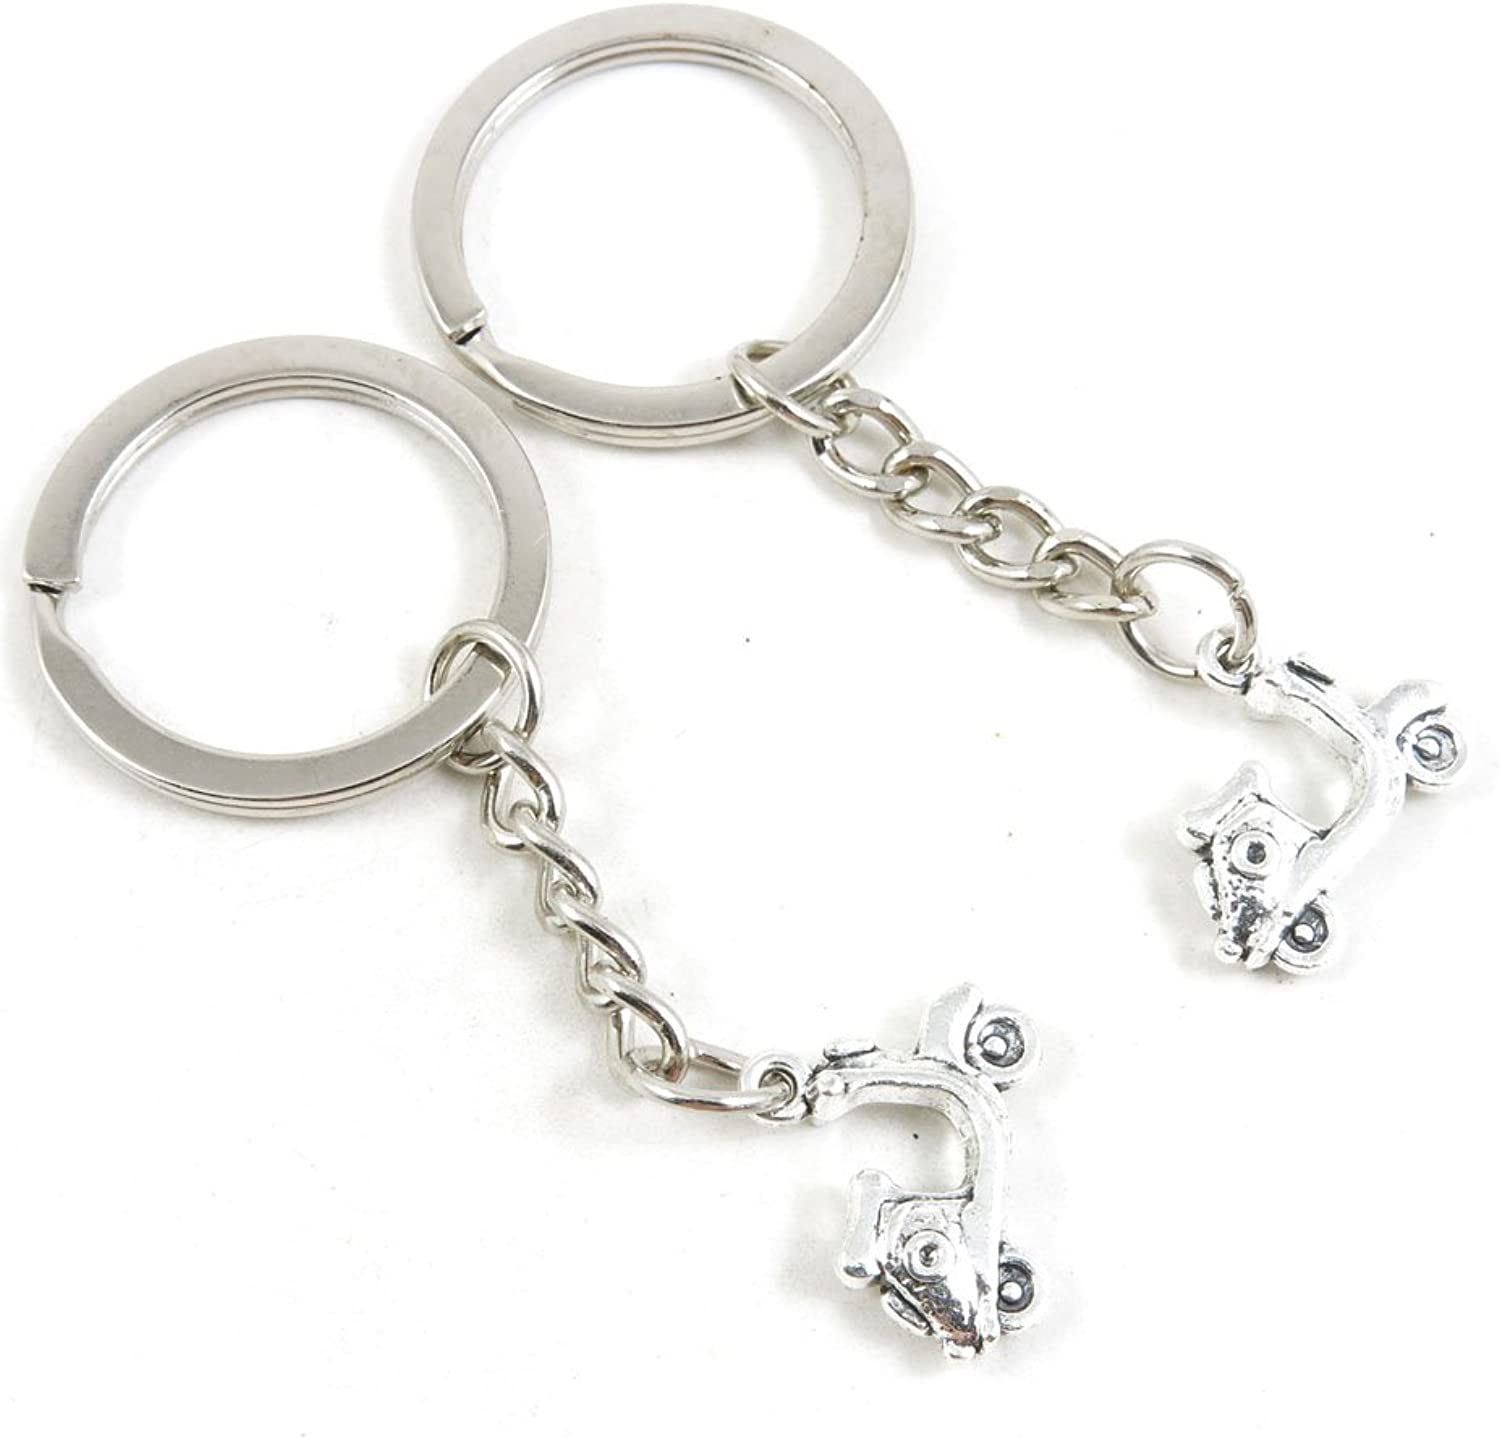 220 Pieces Fashion Jewelry Keyring Keychain Door Car Key Tag Ring Chain Supplier Supply Wholesale Bulk Lots E3GN8 Lady Motorbike Motorcycle